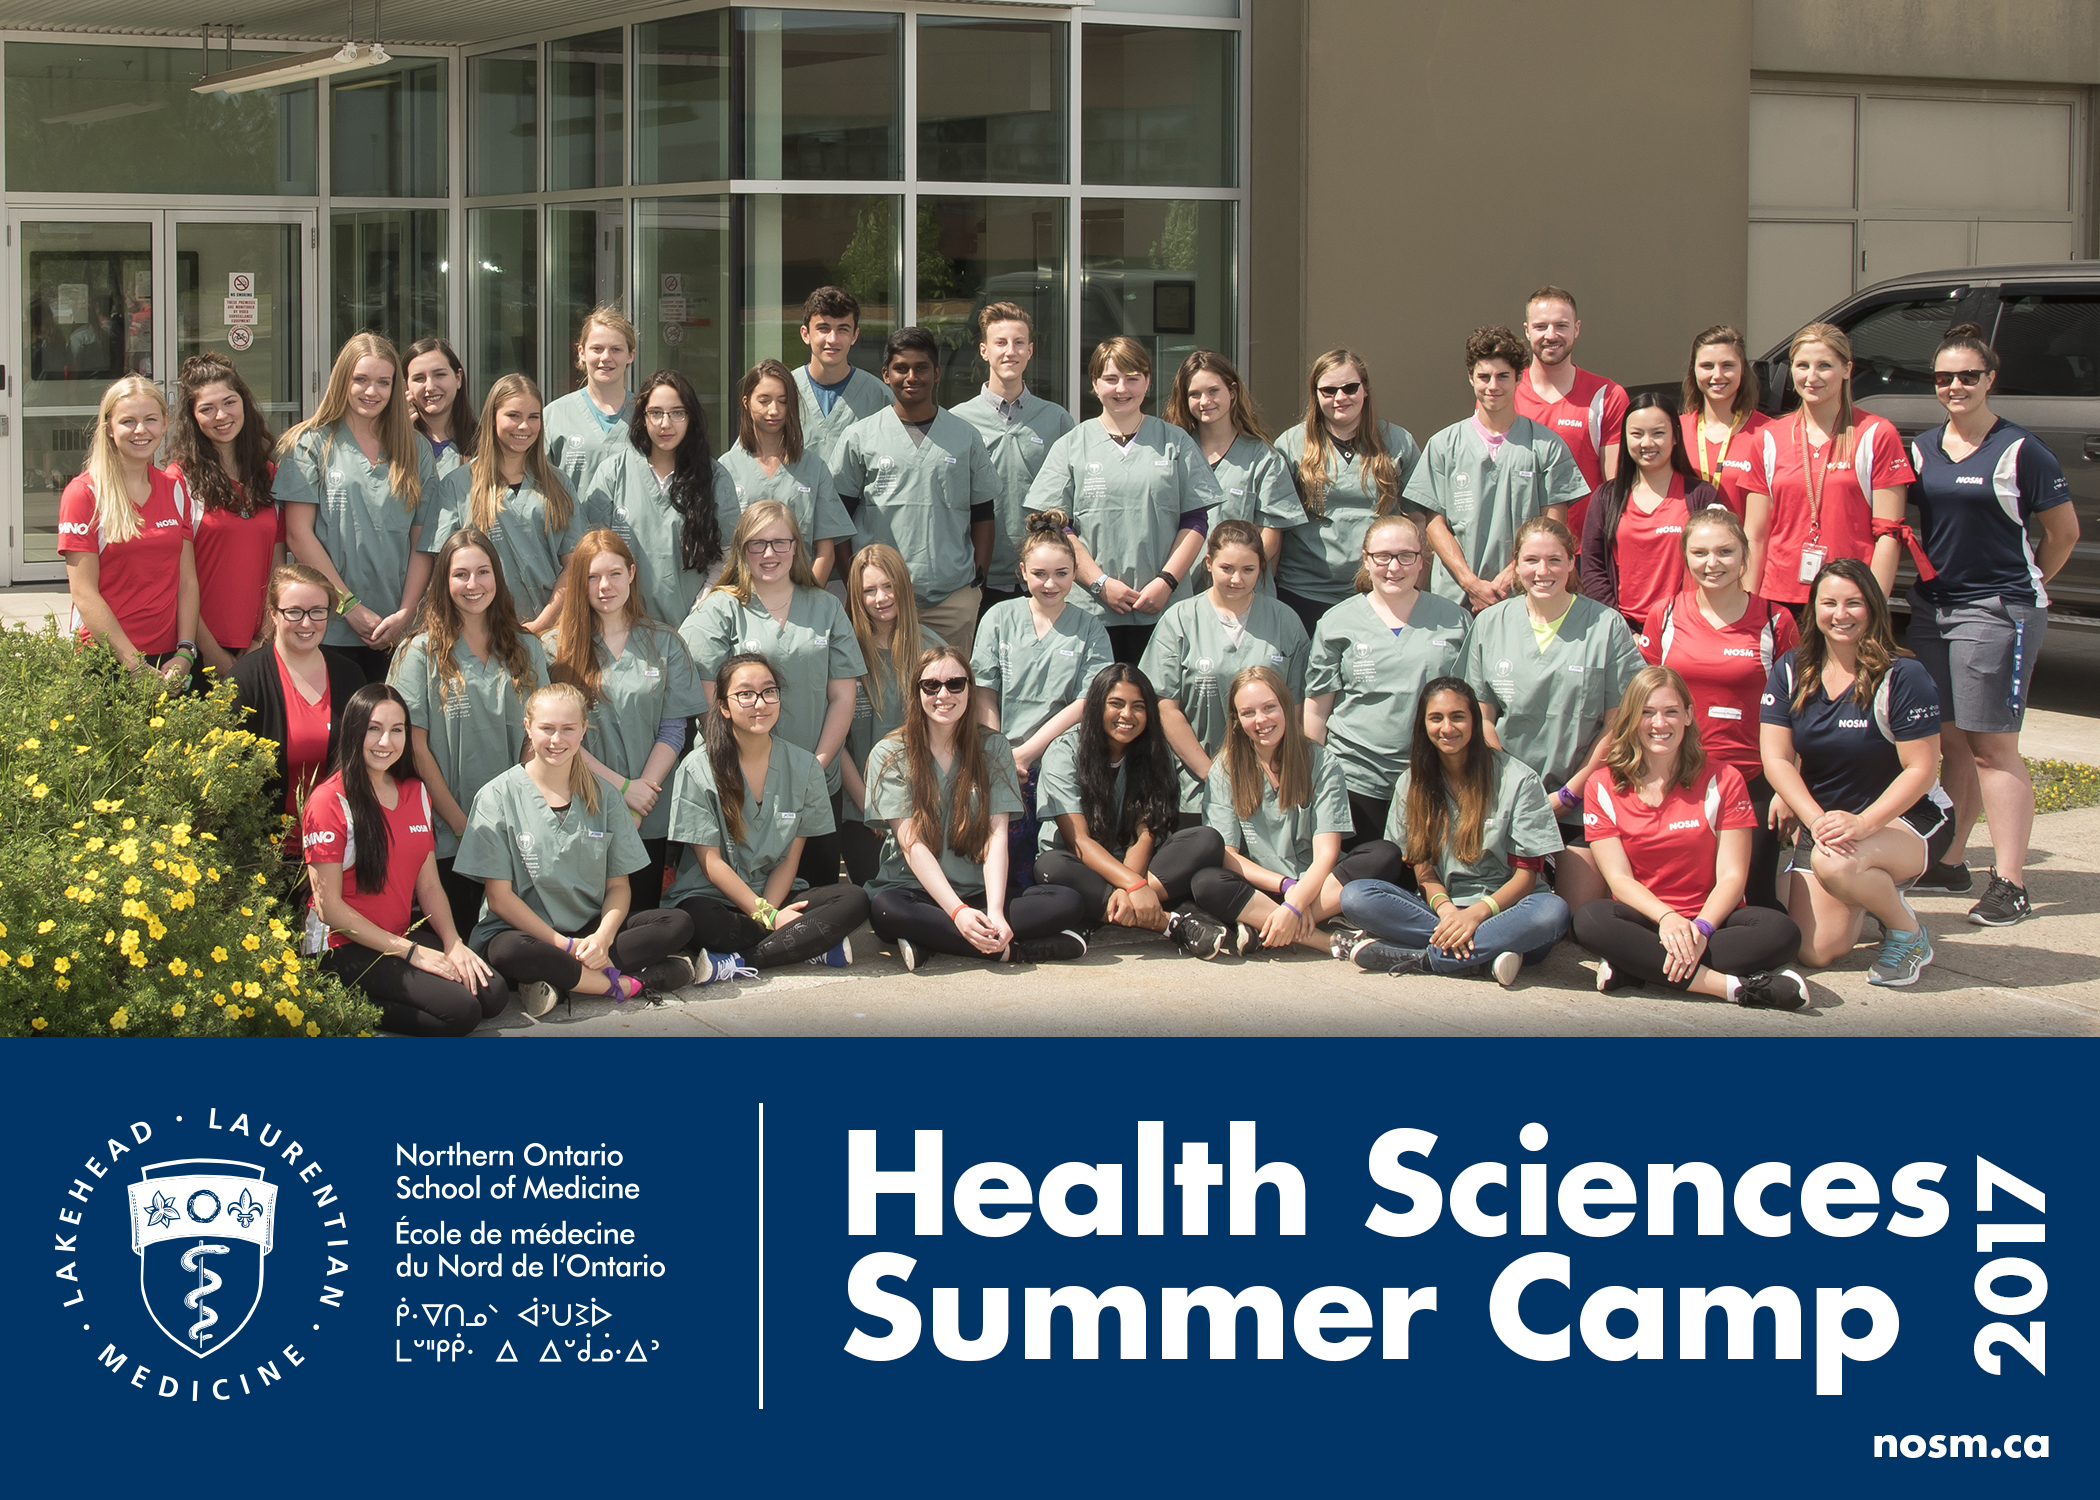 Health Sciences Summer Camp 2017 group photo of campers, team leads, and NOSM staff